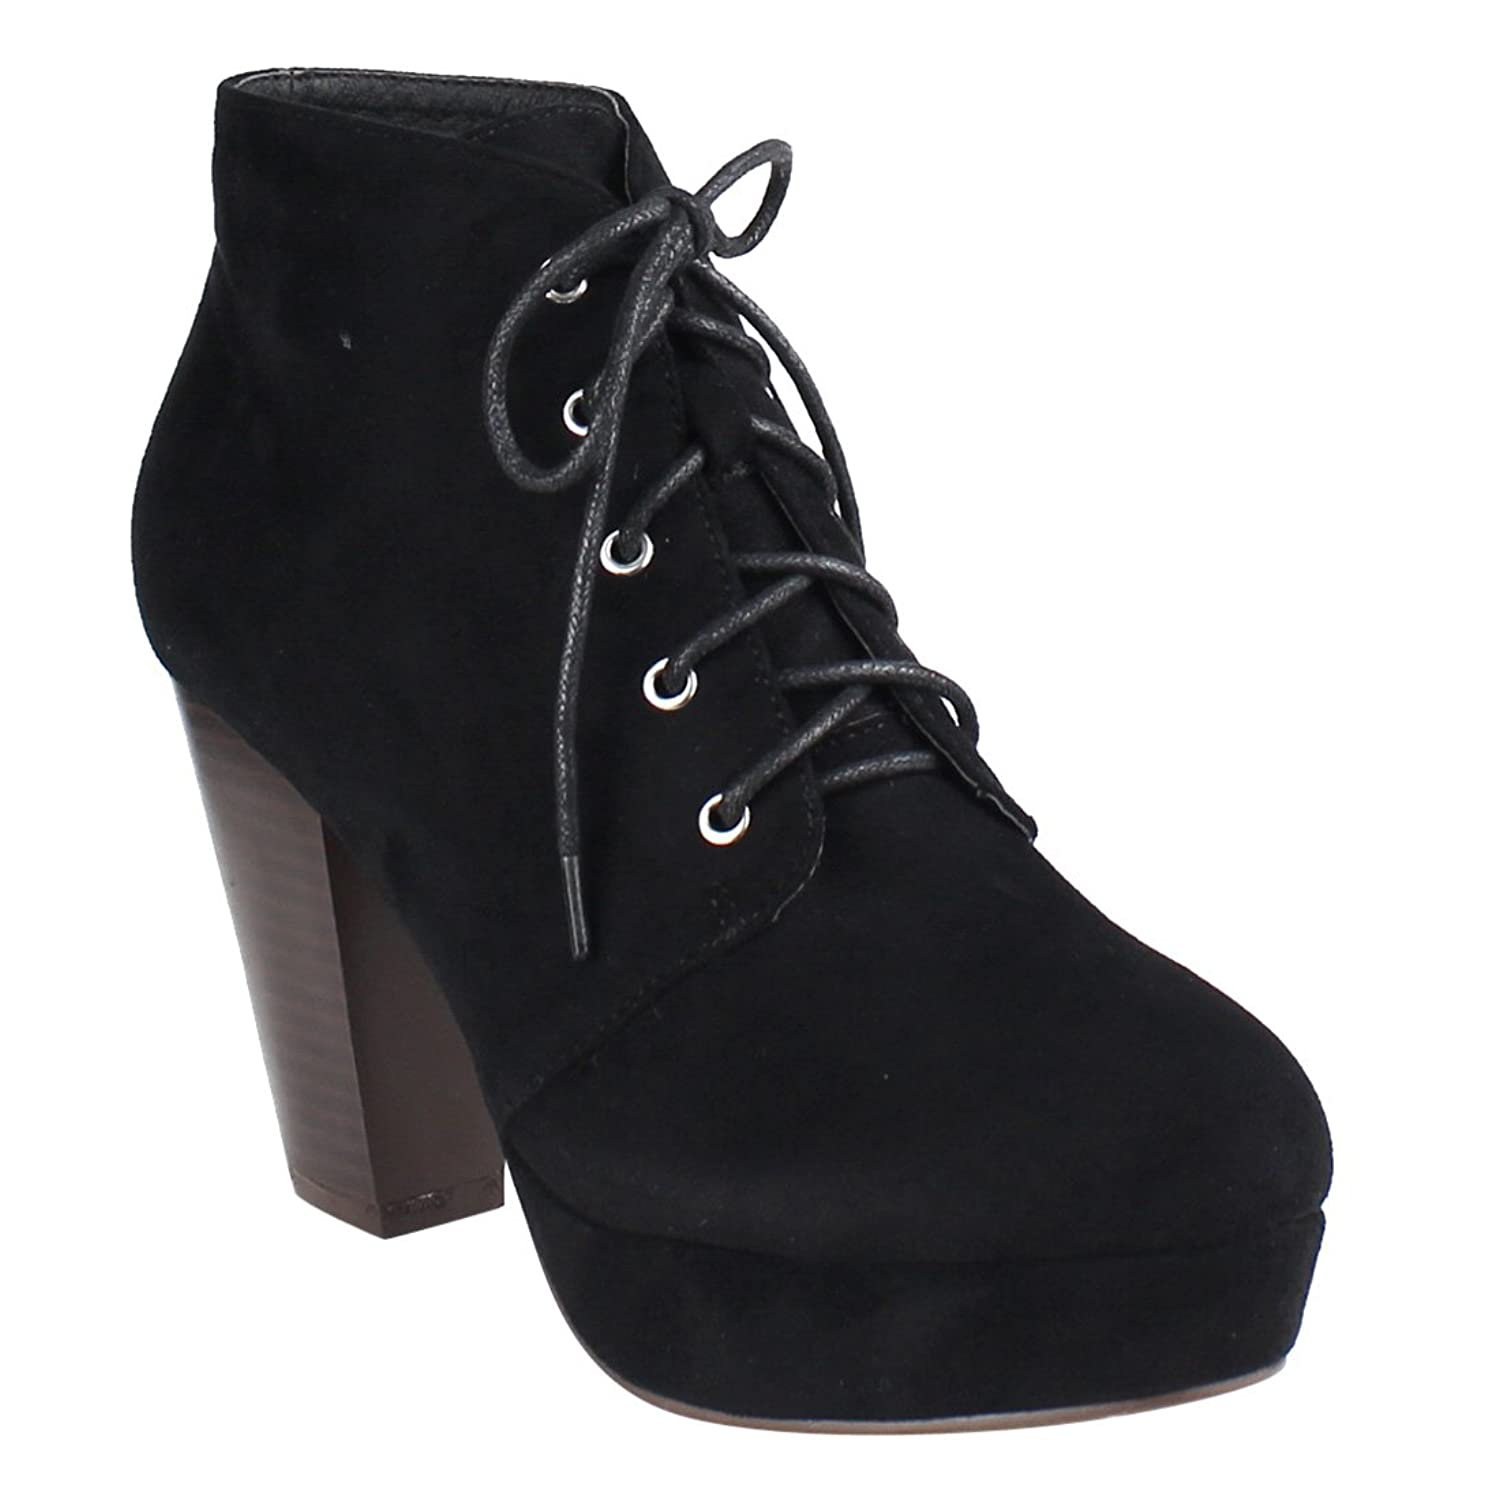 EI44 Women's Lace Up Stacked Chunky Heel Platform Ankle Bootie